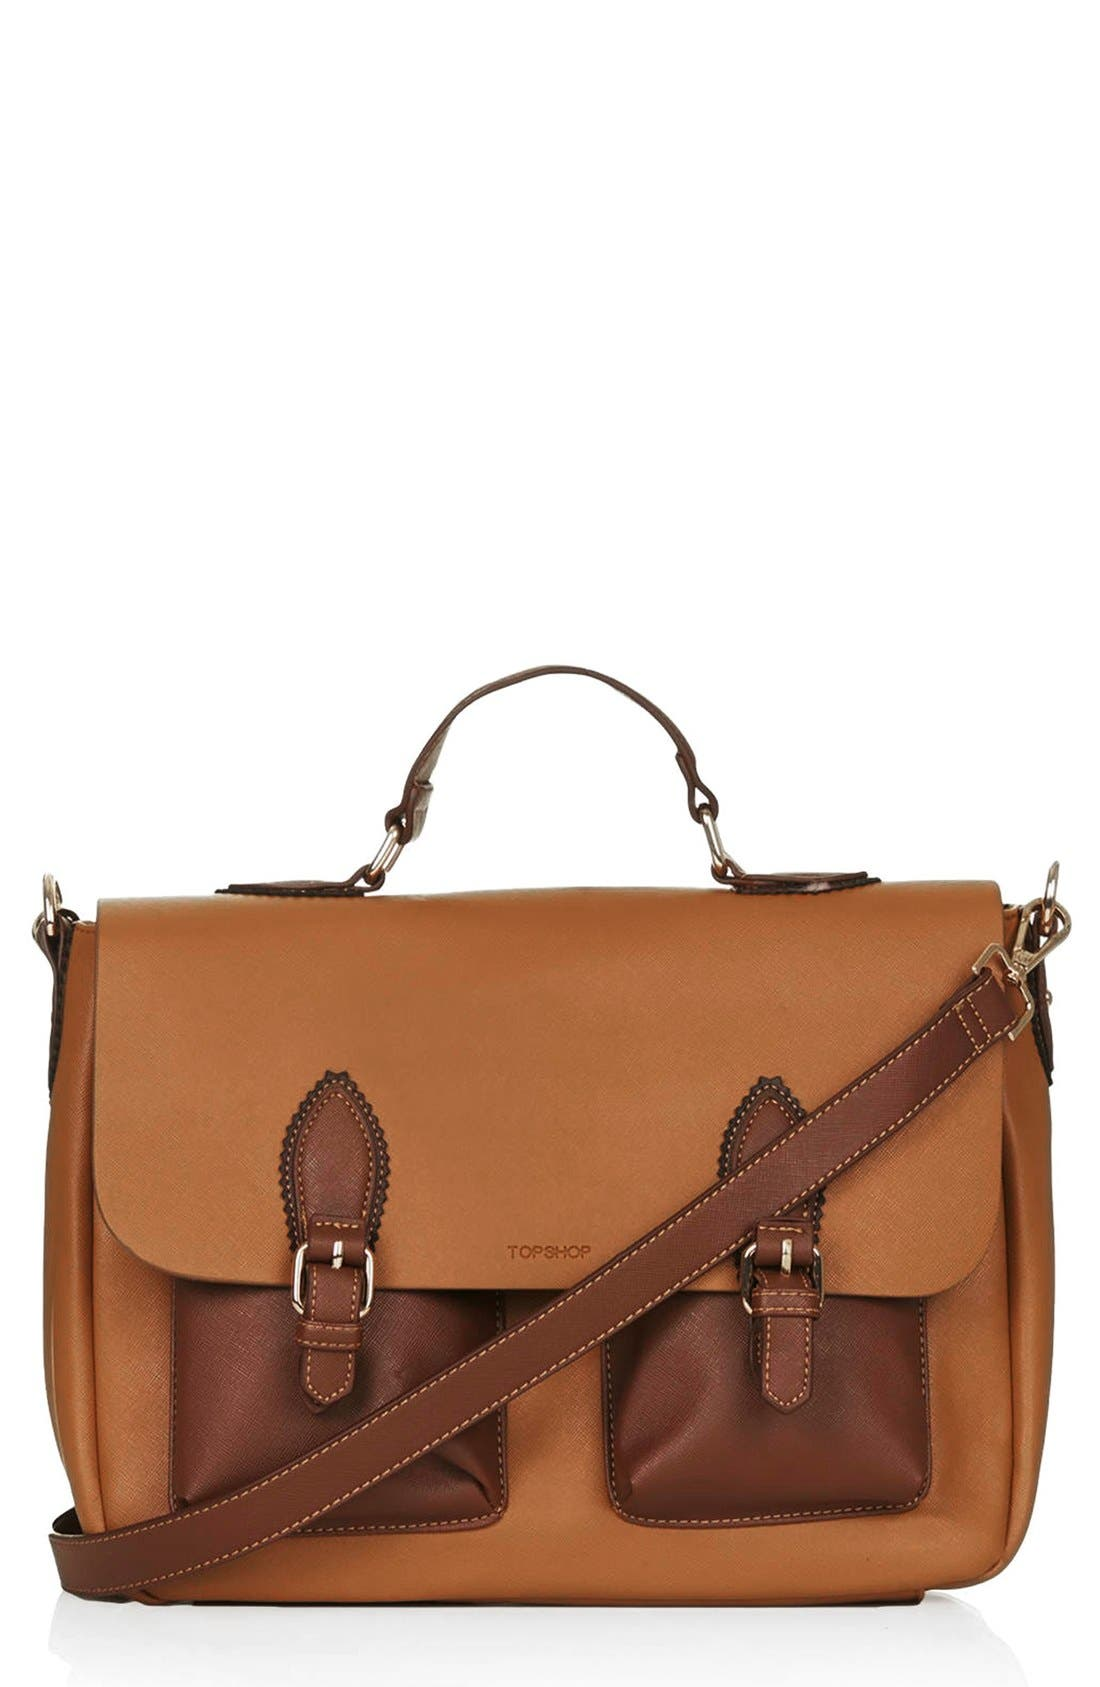 Alternate Image 1 Selected - Topshop 'Saffiano' Colorblock Satchel